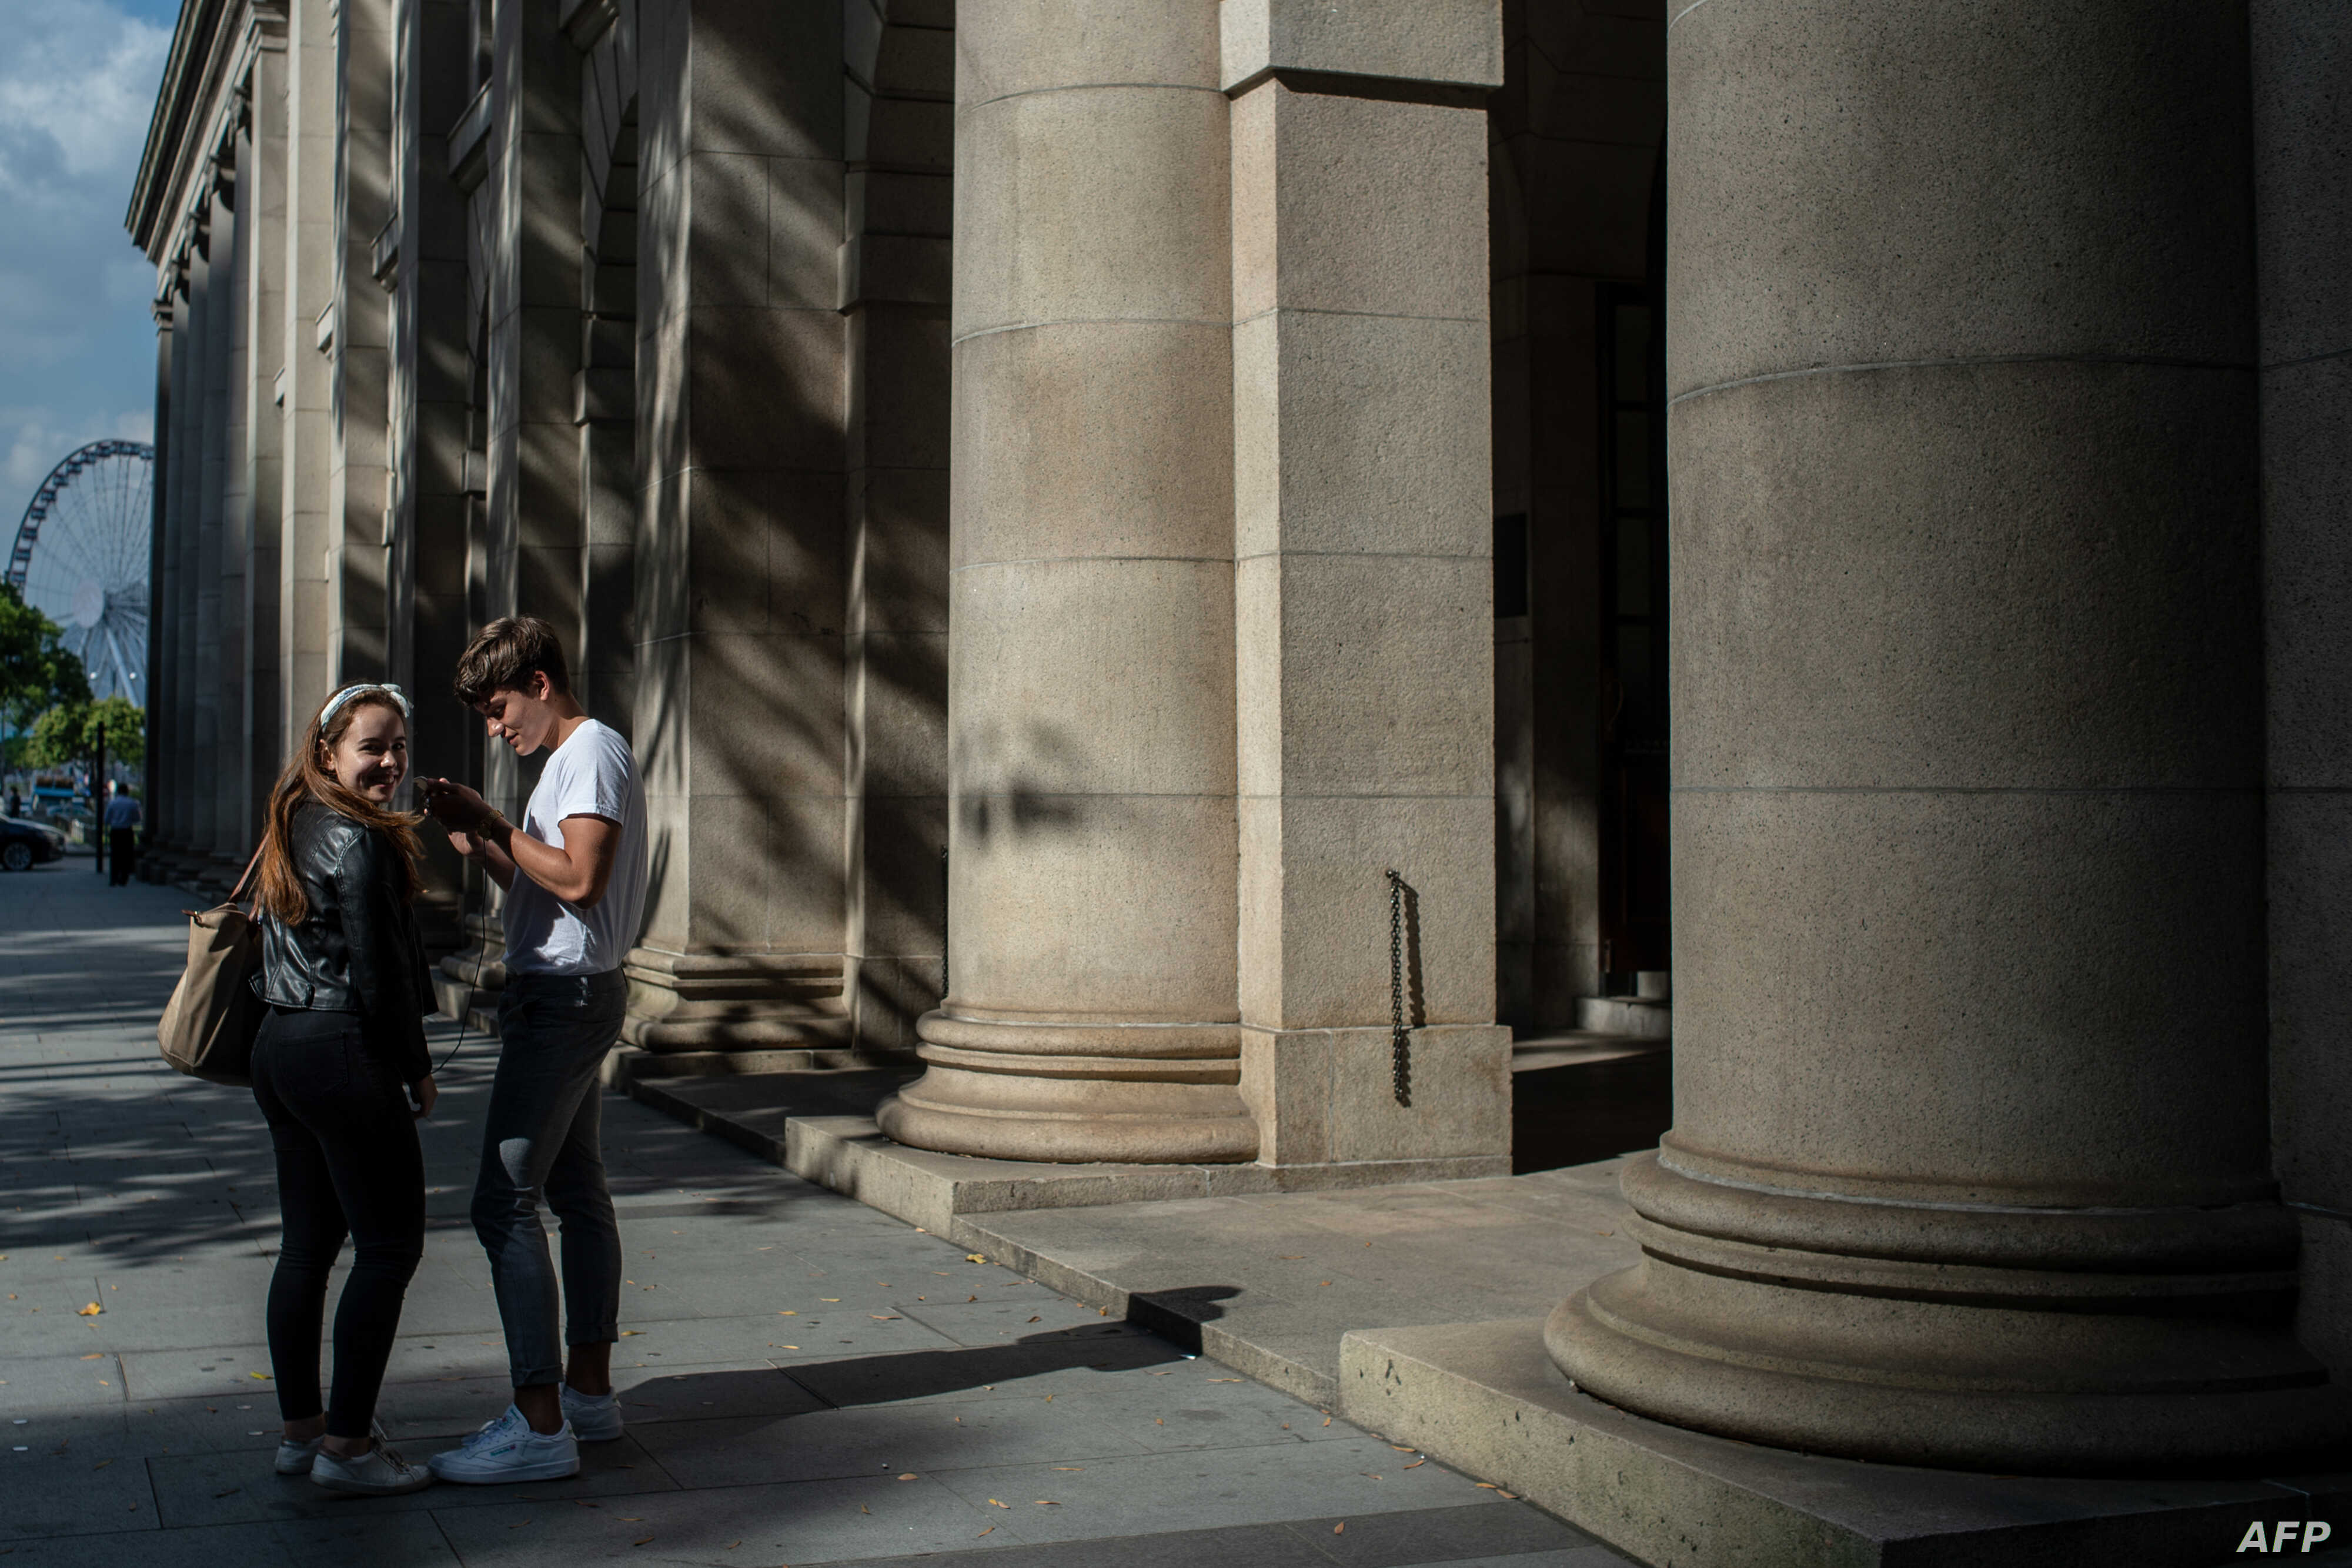 A couple stands in front of the Court of Final Appeal building in Hong Kong, April 10, 2018.